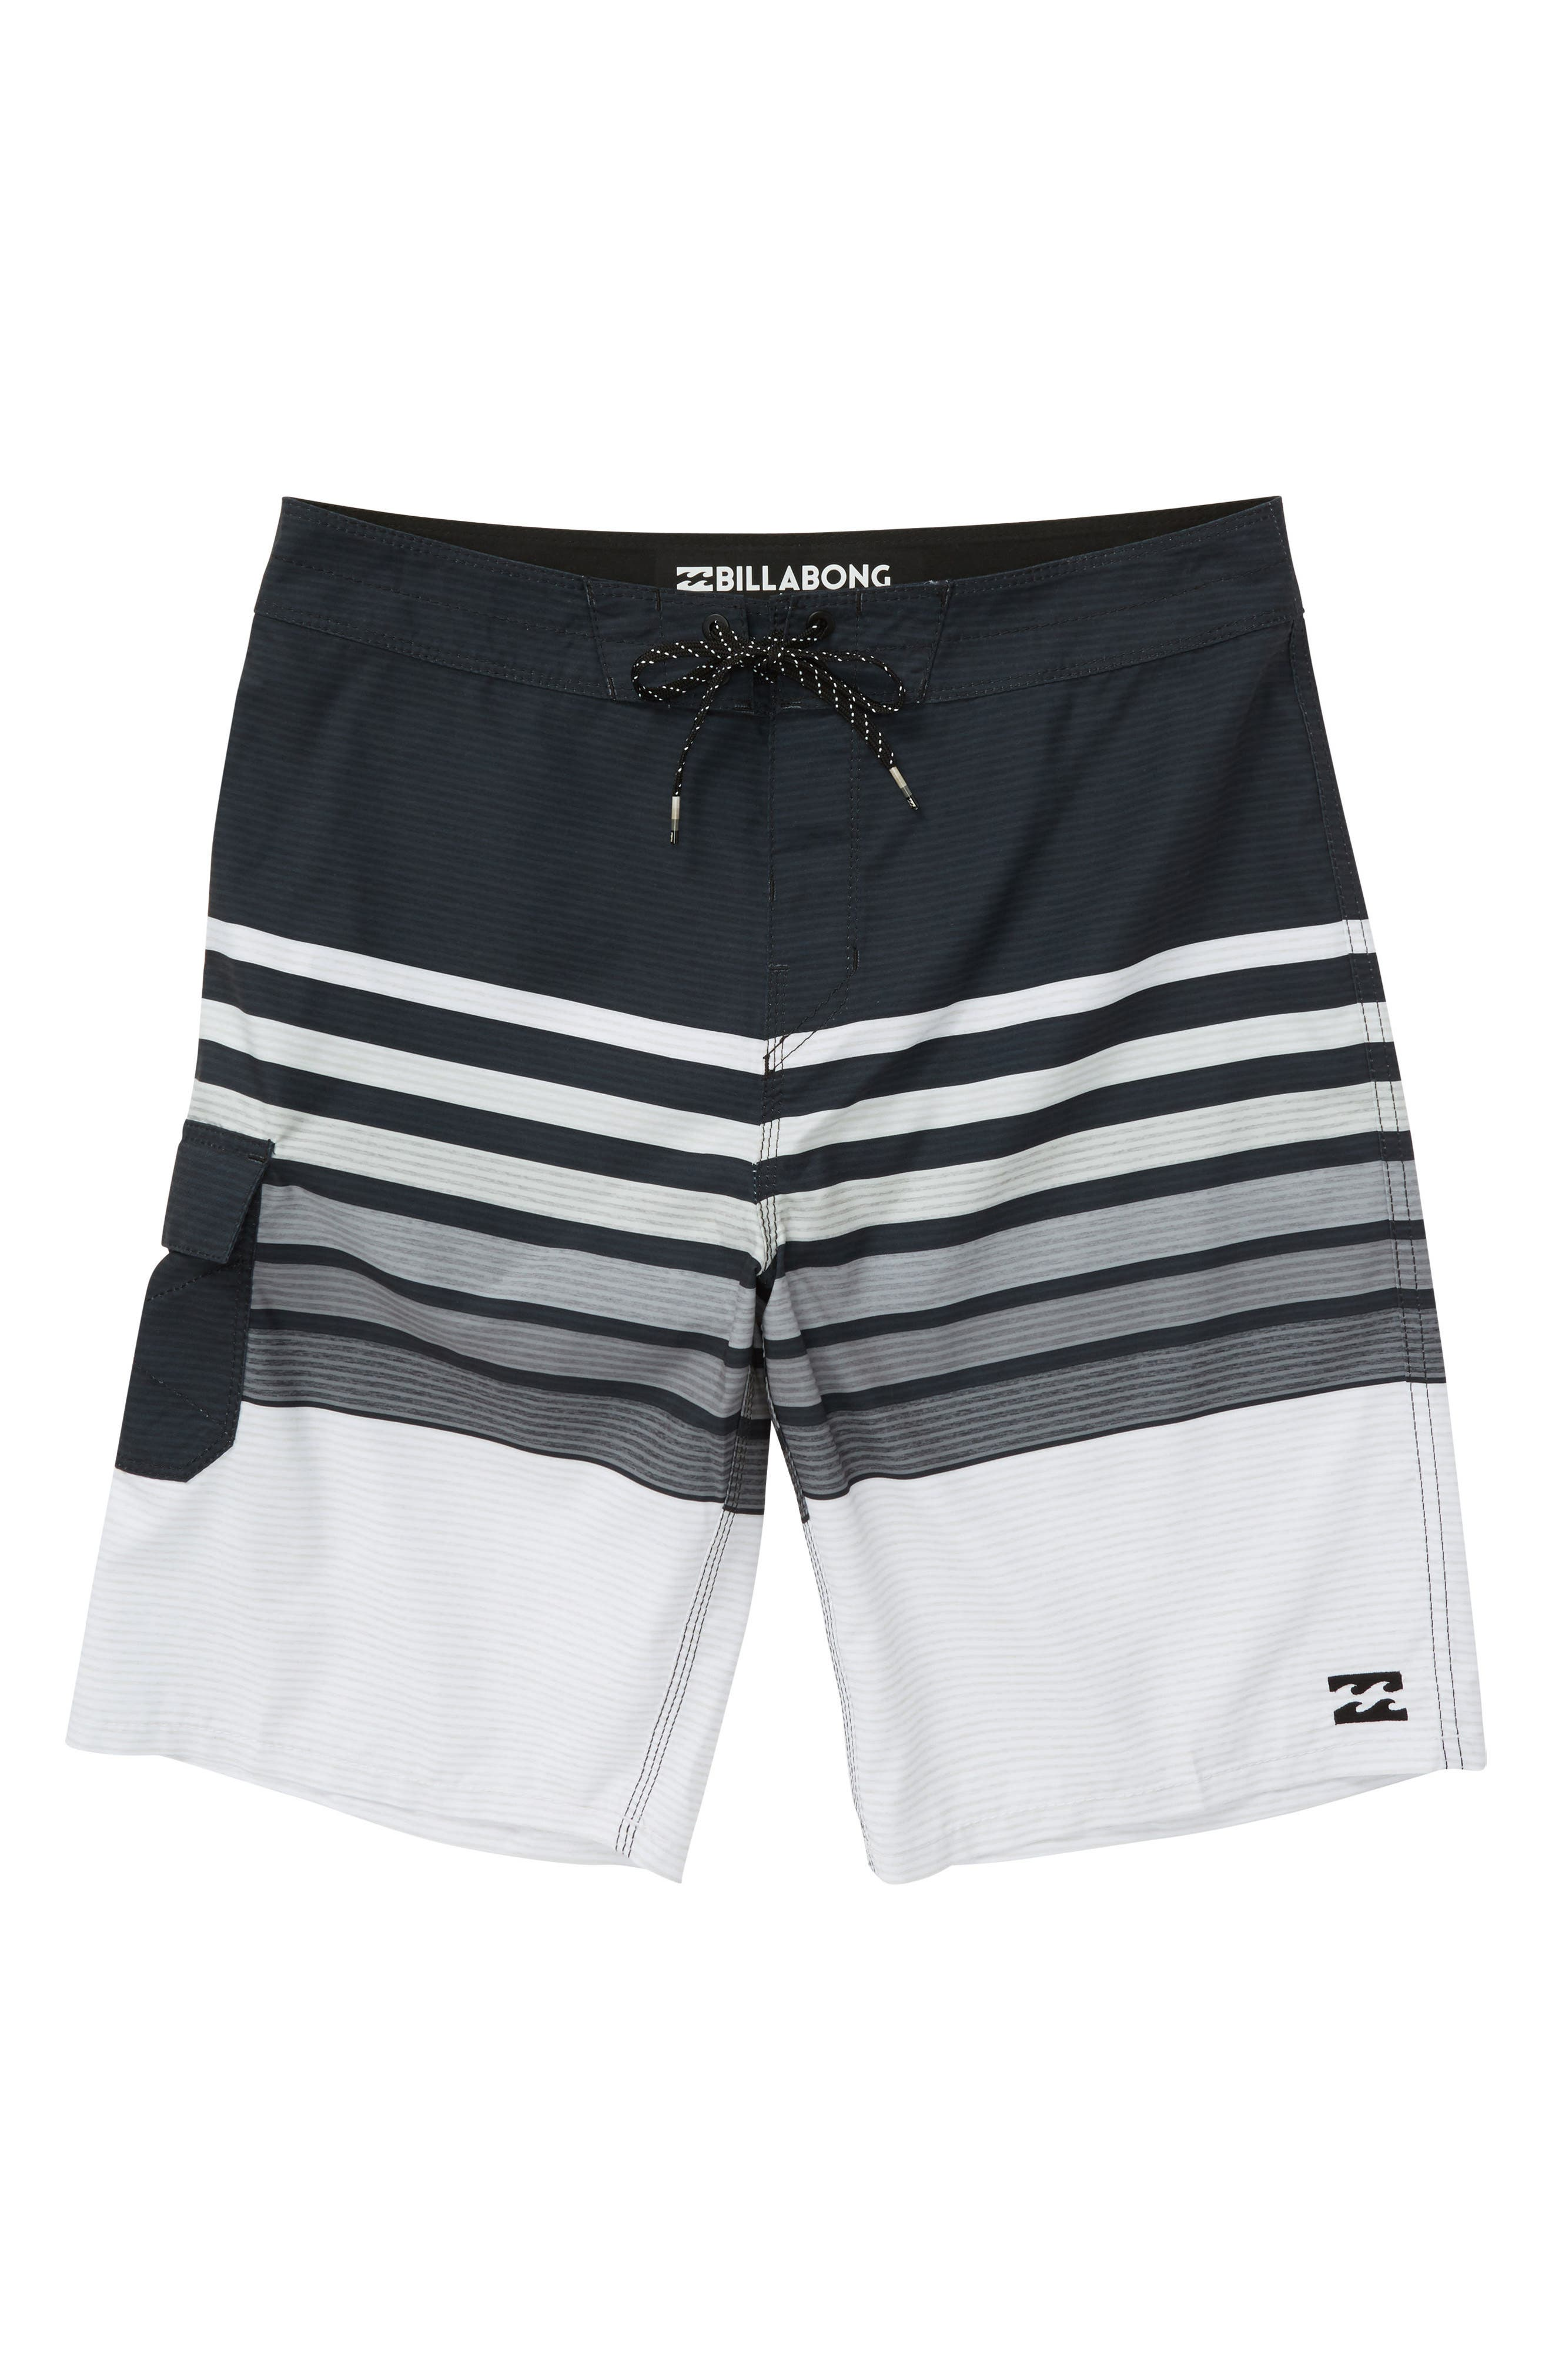 BILLABONG All Day OG Stripe Board Shorts, Main, color, 001